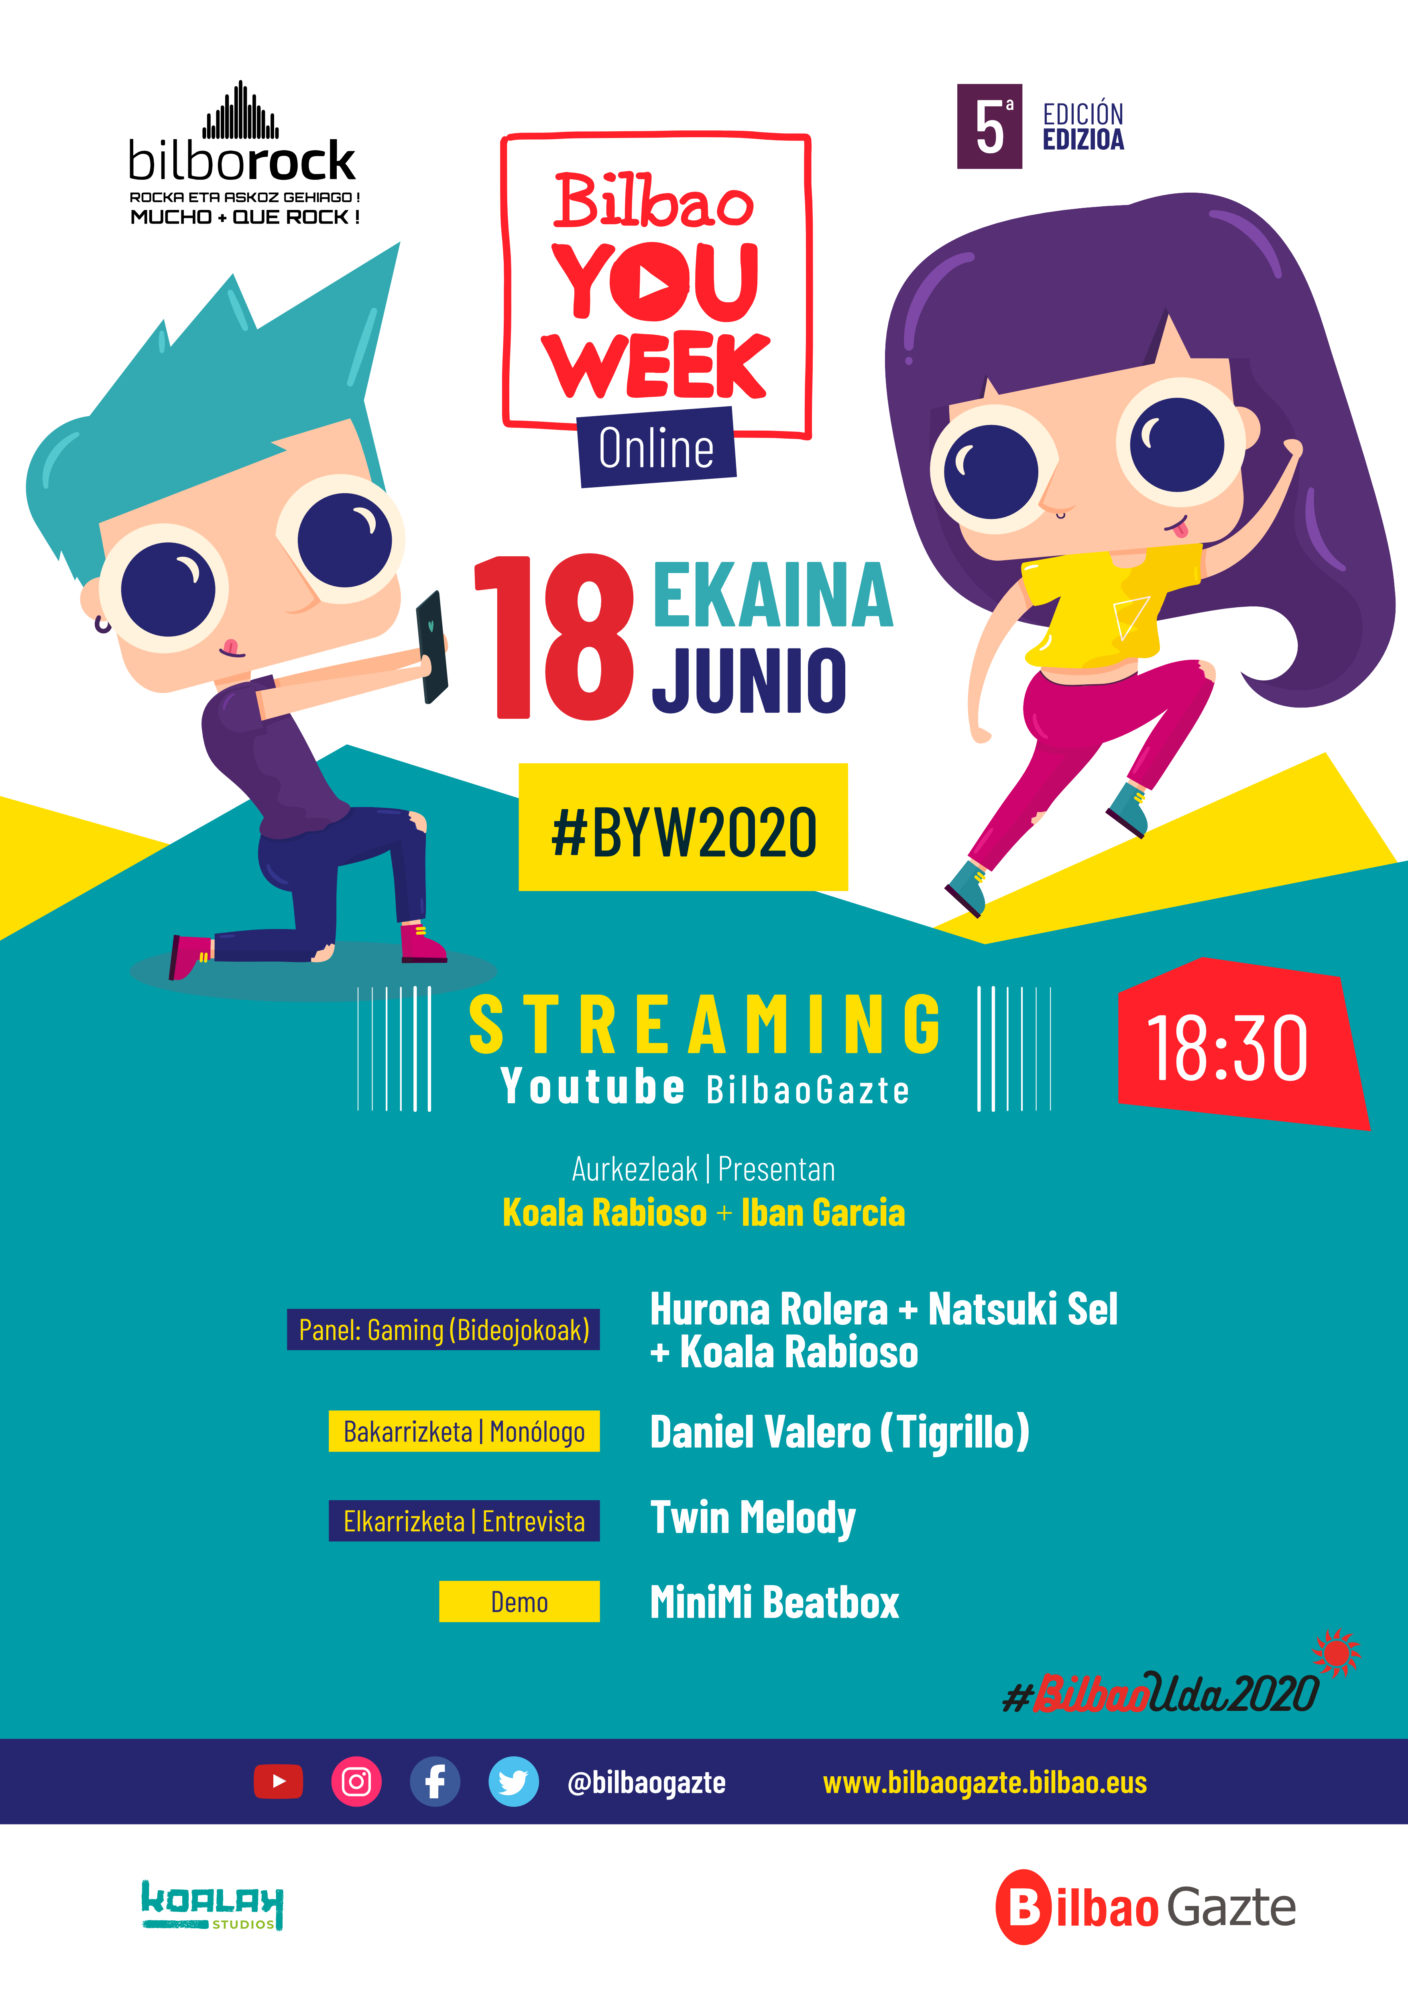 Programa #BilbaoYouWeek vía streaming